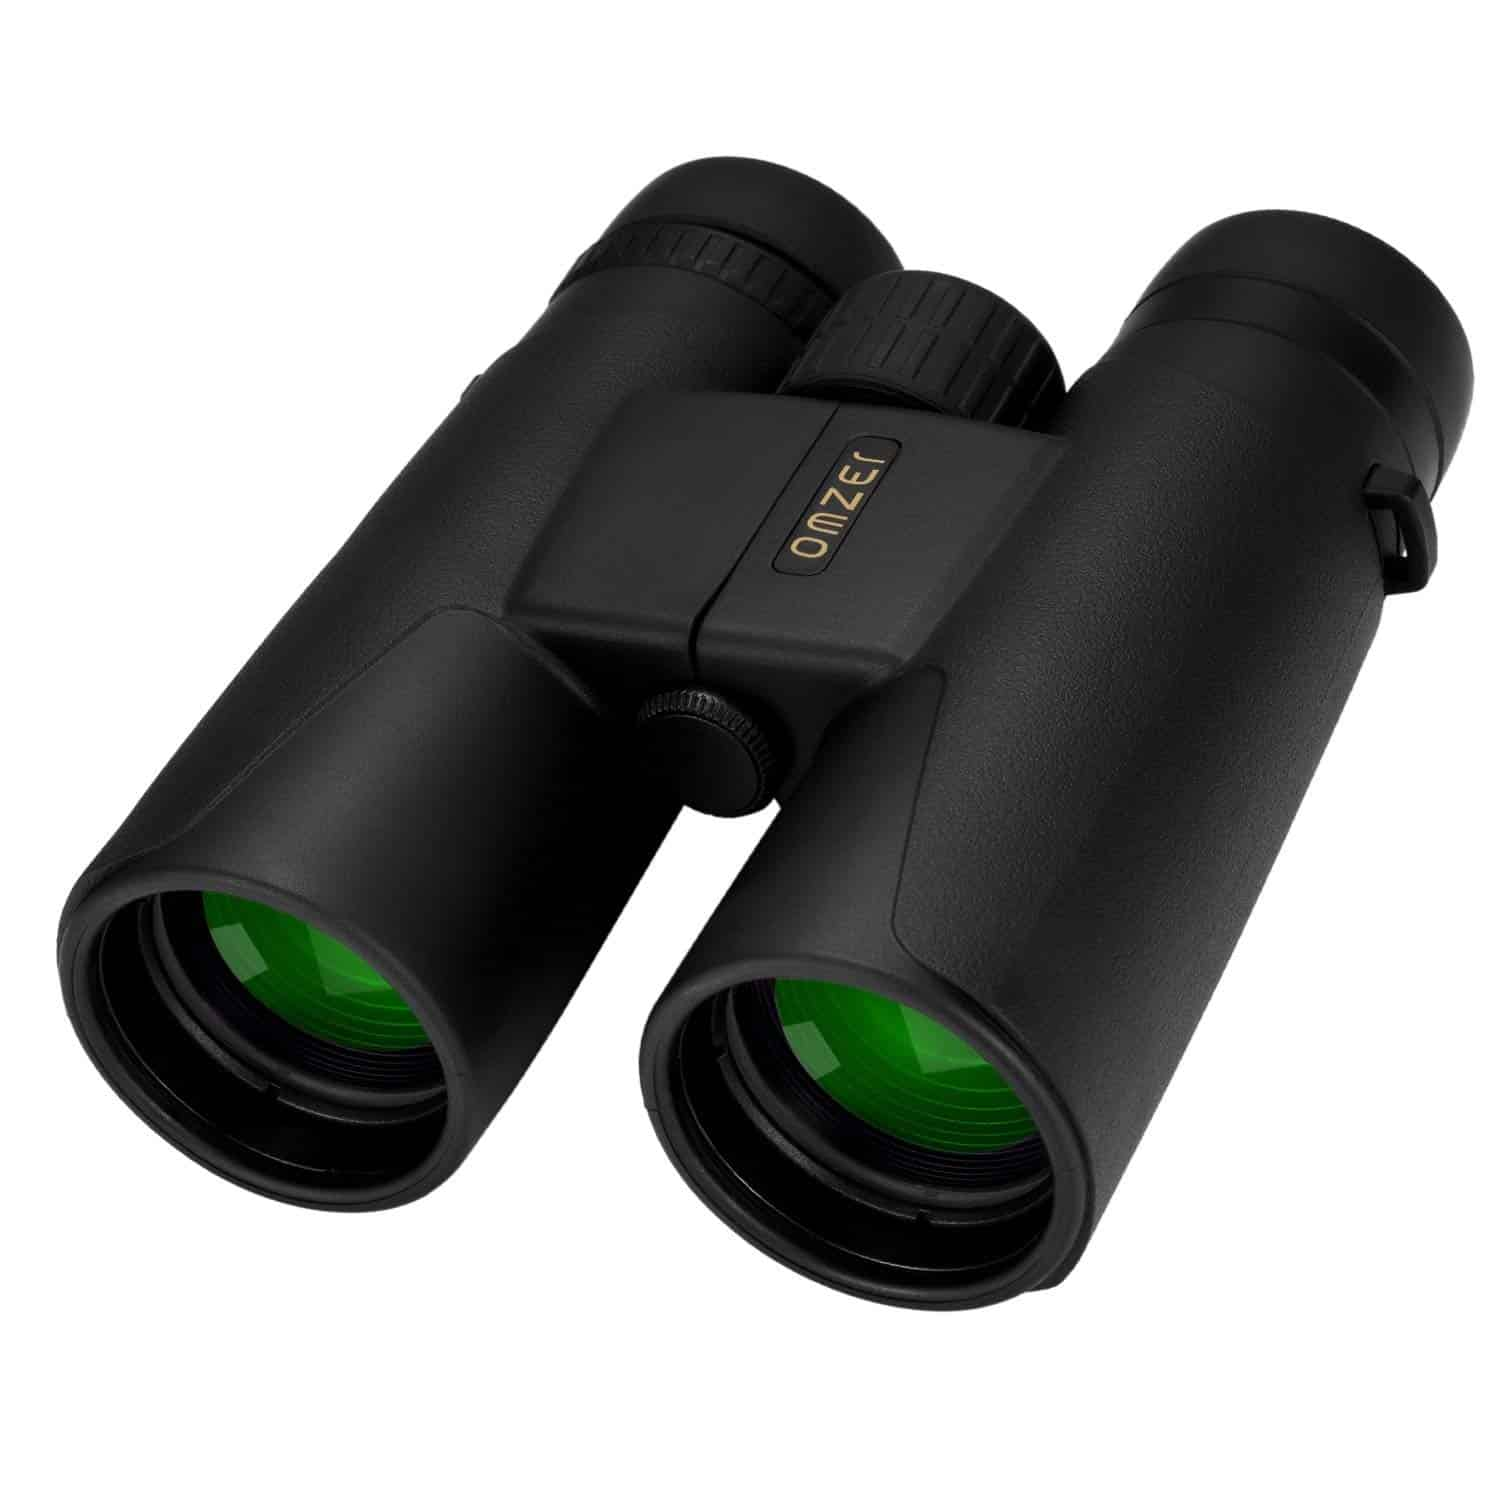 OMZER 10×42 High-powered Compact HD Binoculars